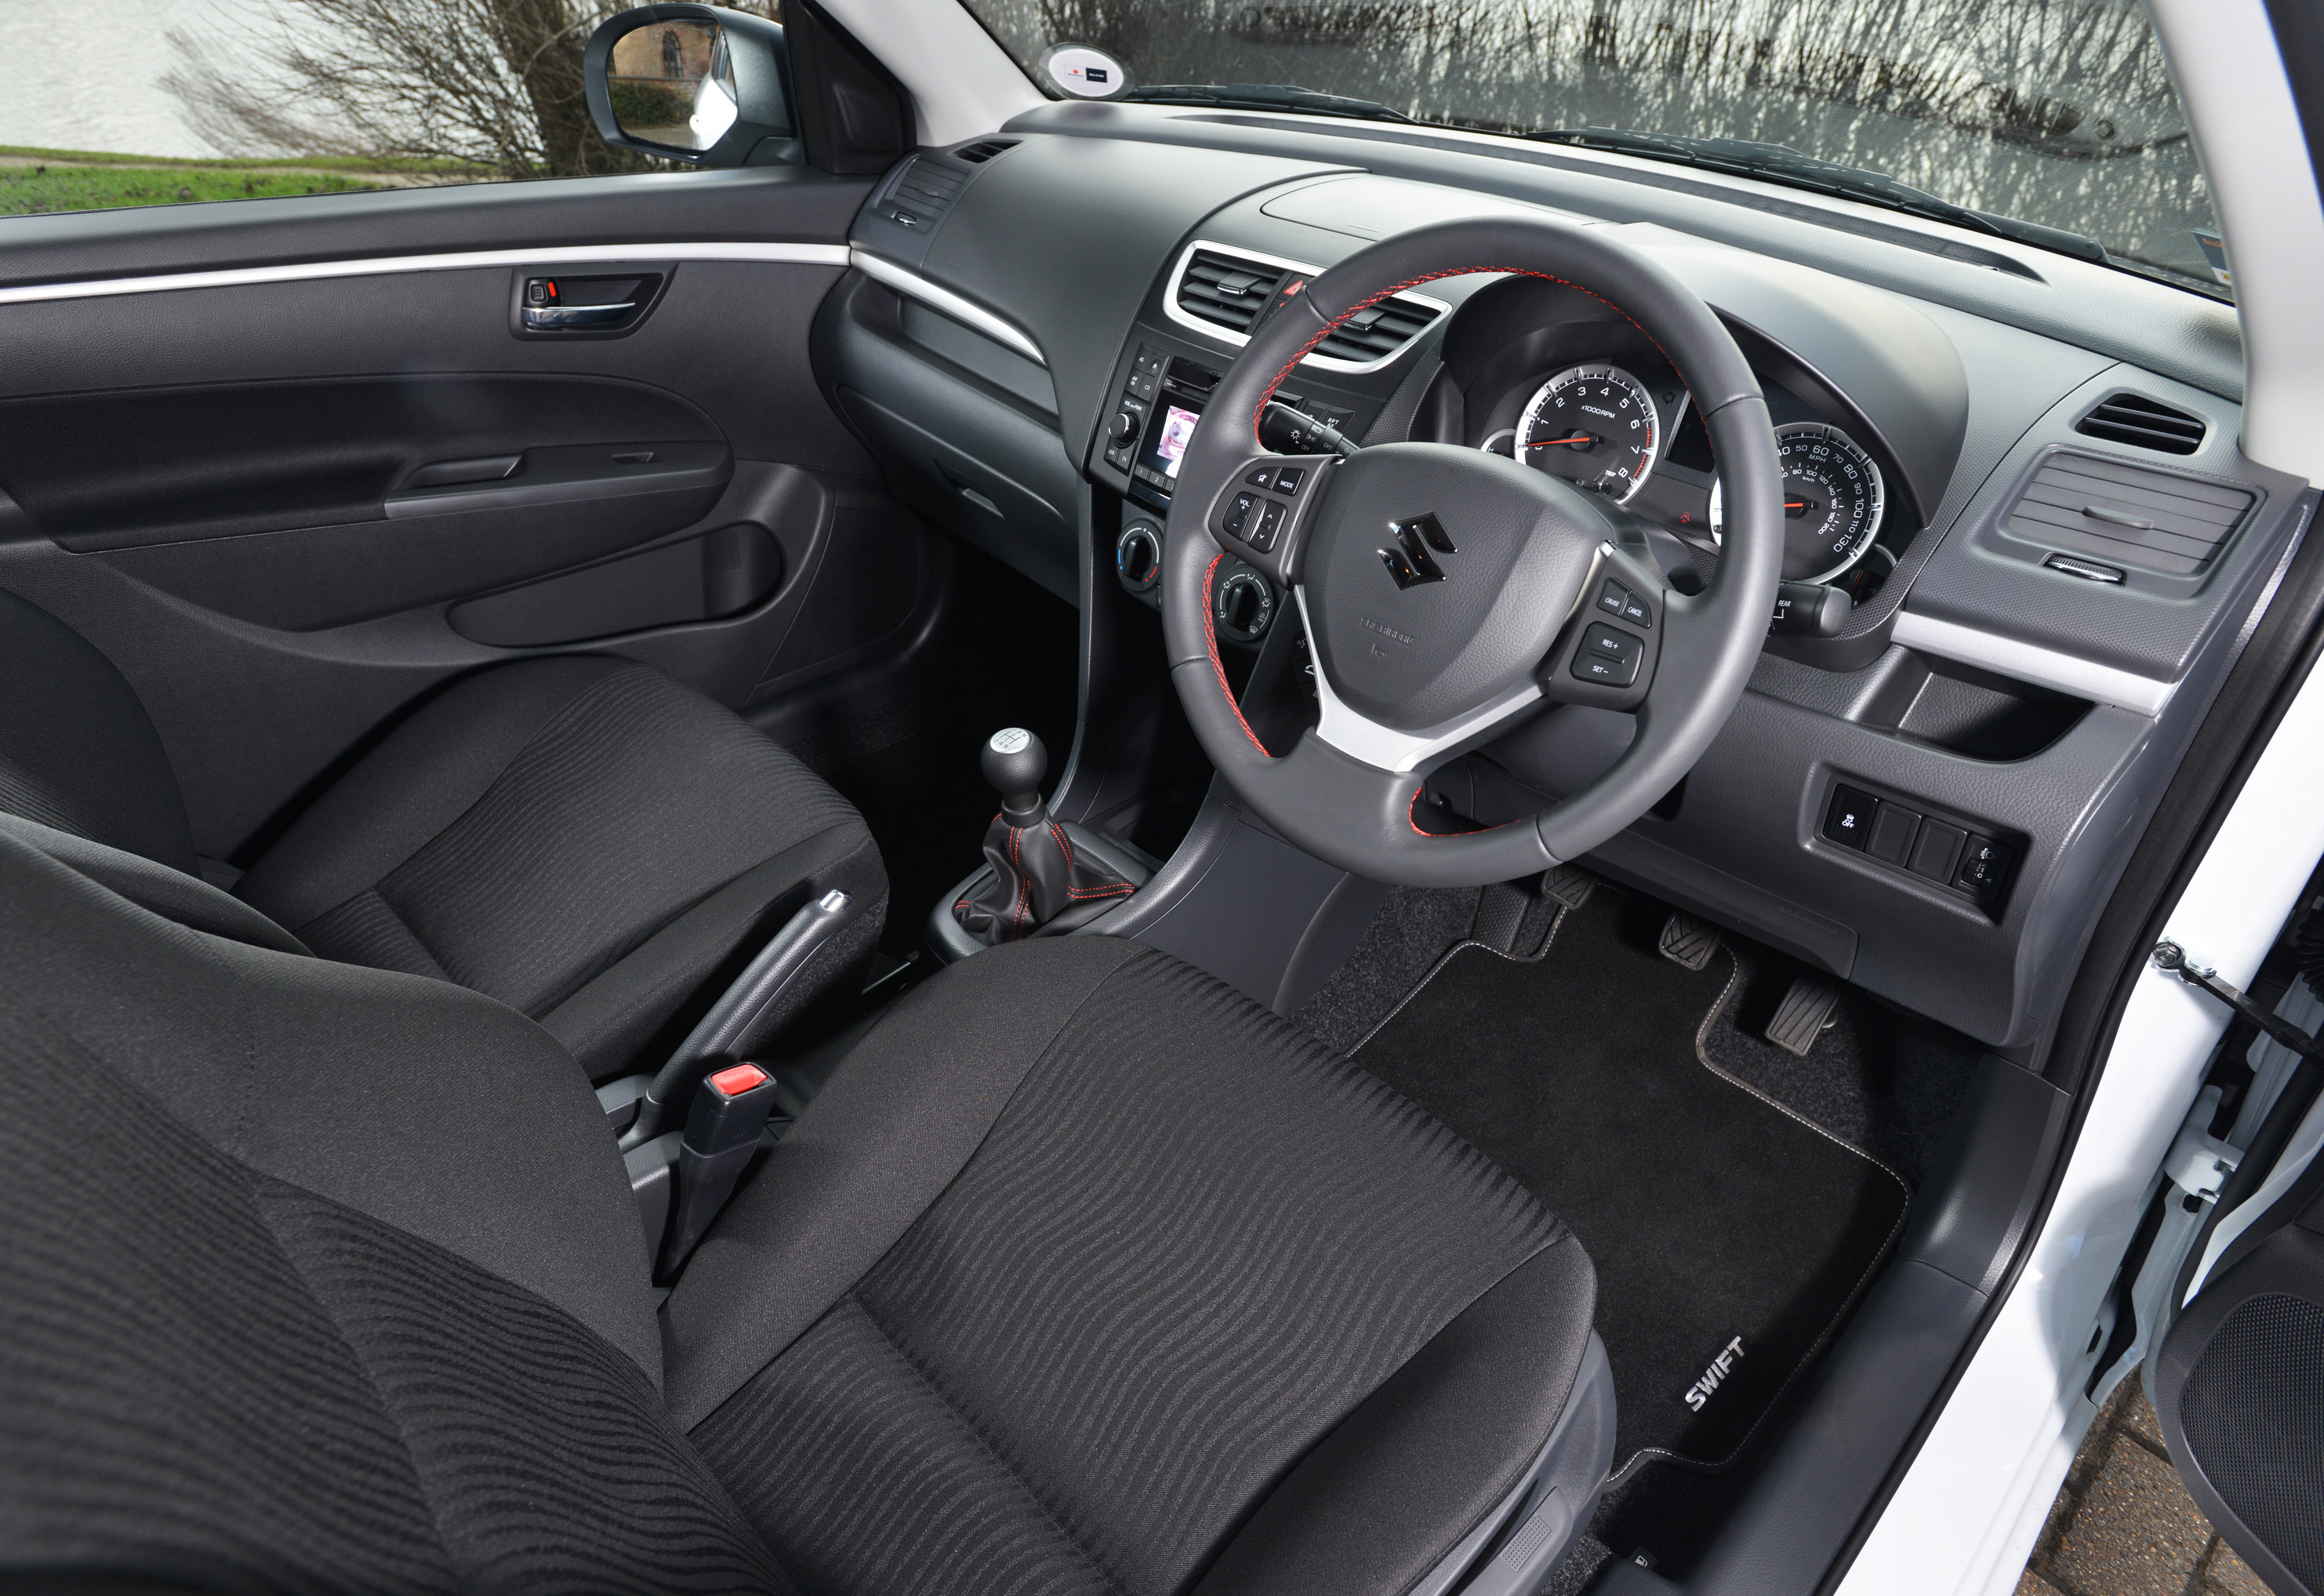 suzuki swift 2013 interior. Black Bedroom Furniture Sets. Home Design Ideas